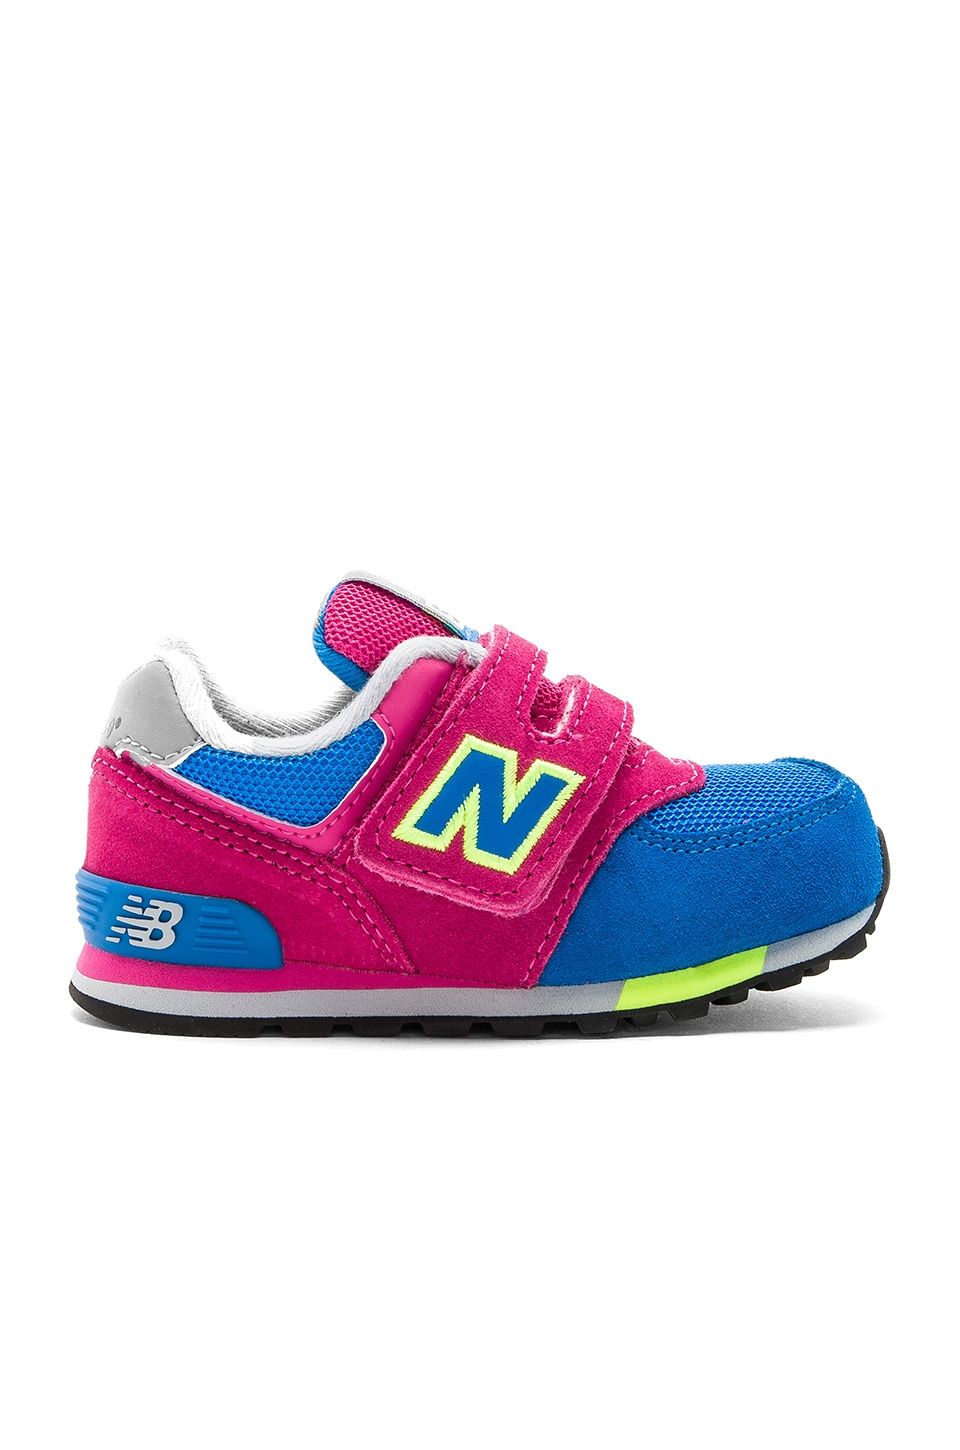 New Balance Cut & Paste Sneaker in Pink & Blue